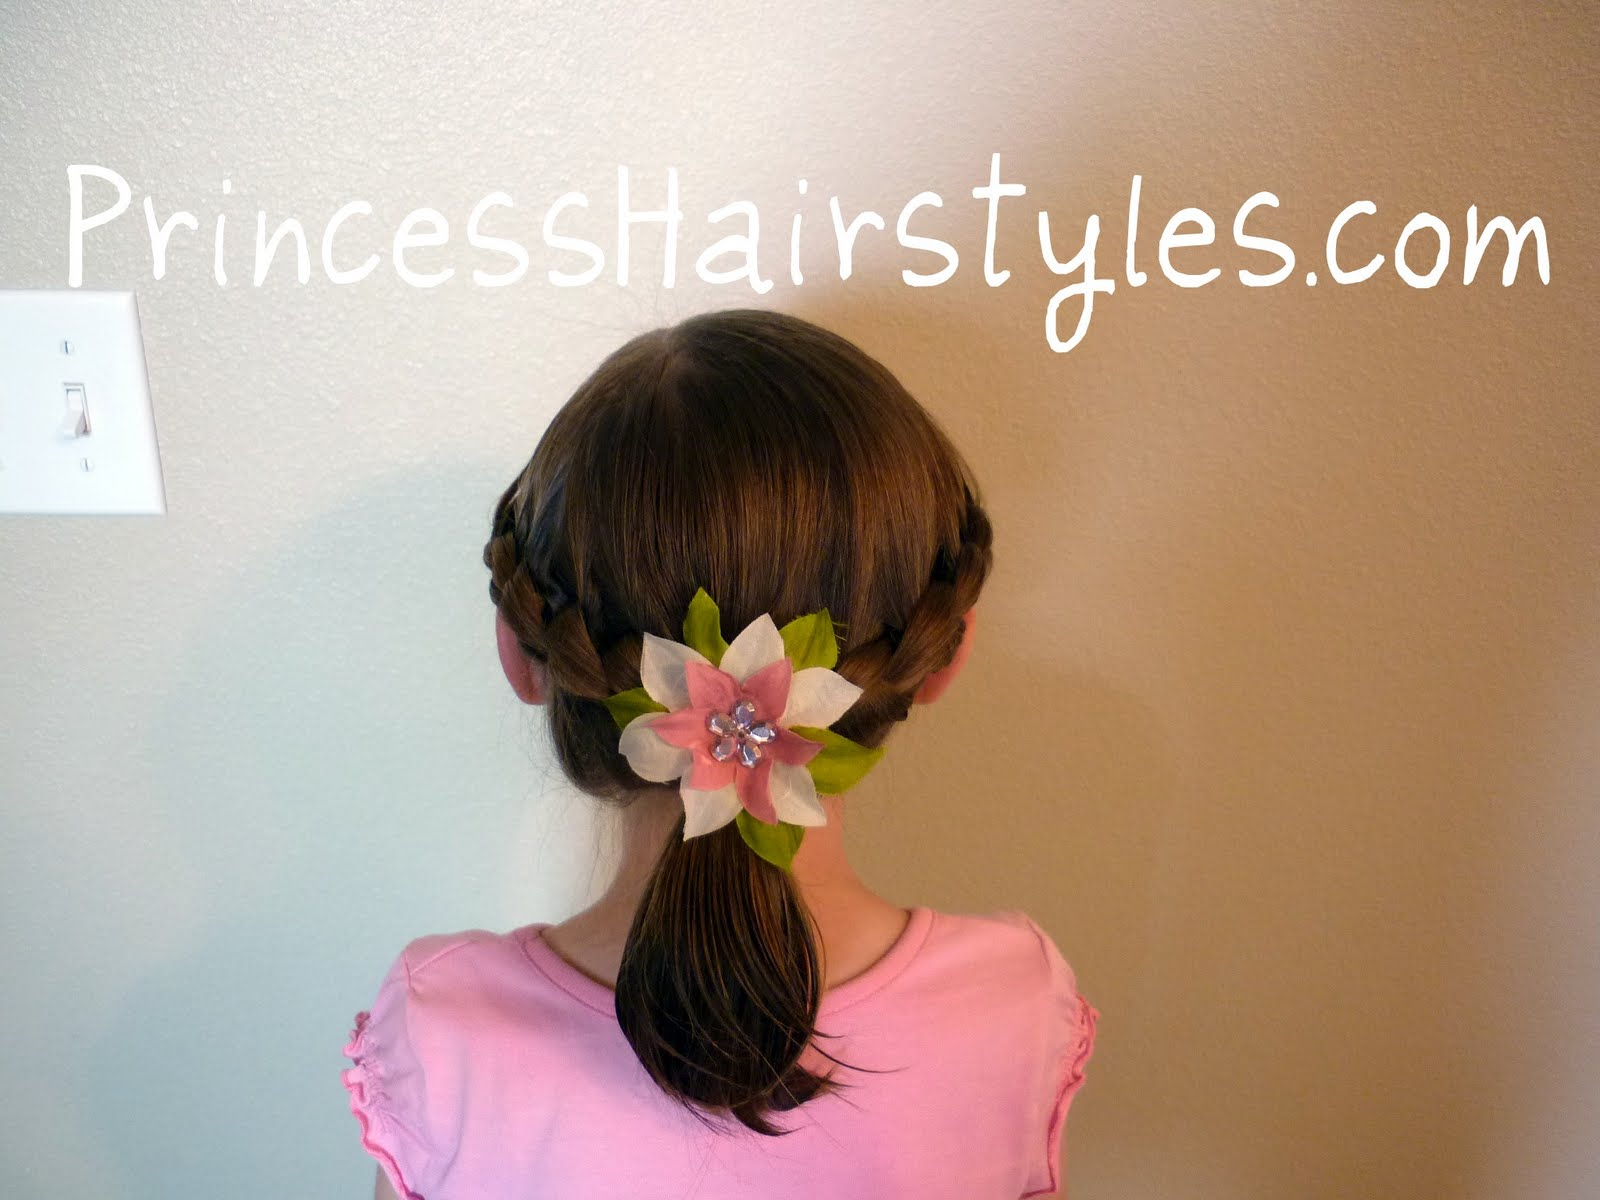 Fantastic Knotted Braid Hairstyle Hairstyles For Girls Princess Hairstyles Short Hairstyles Gunalazisus